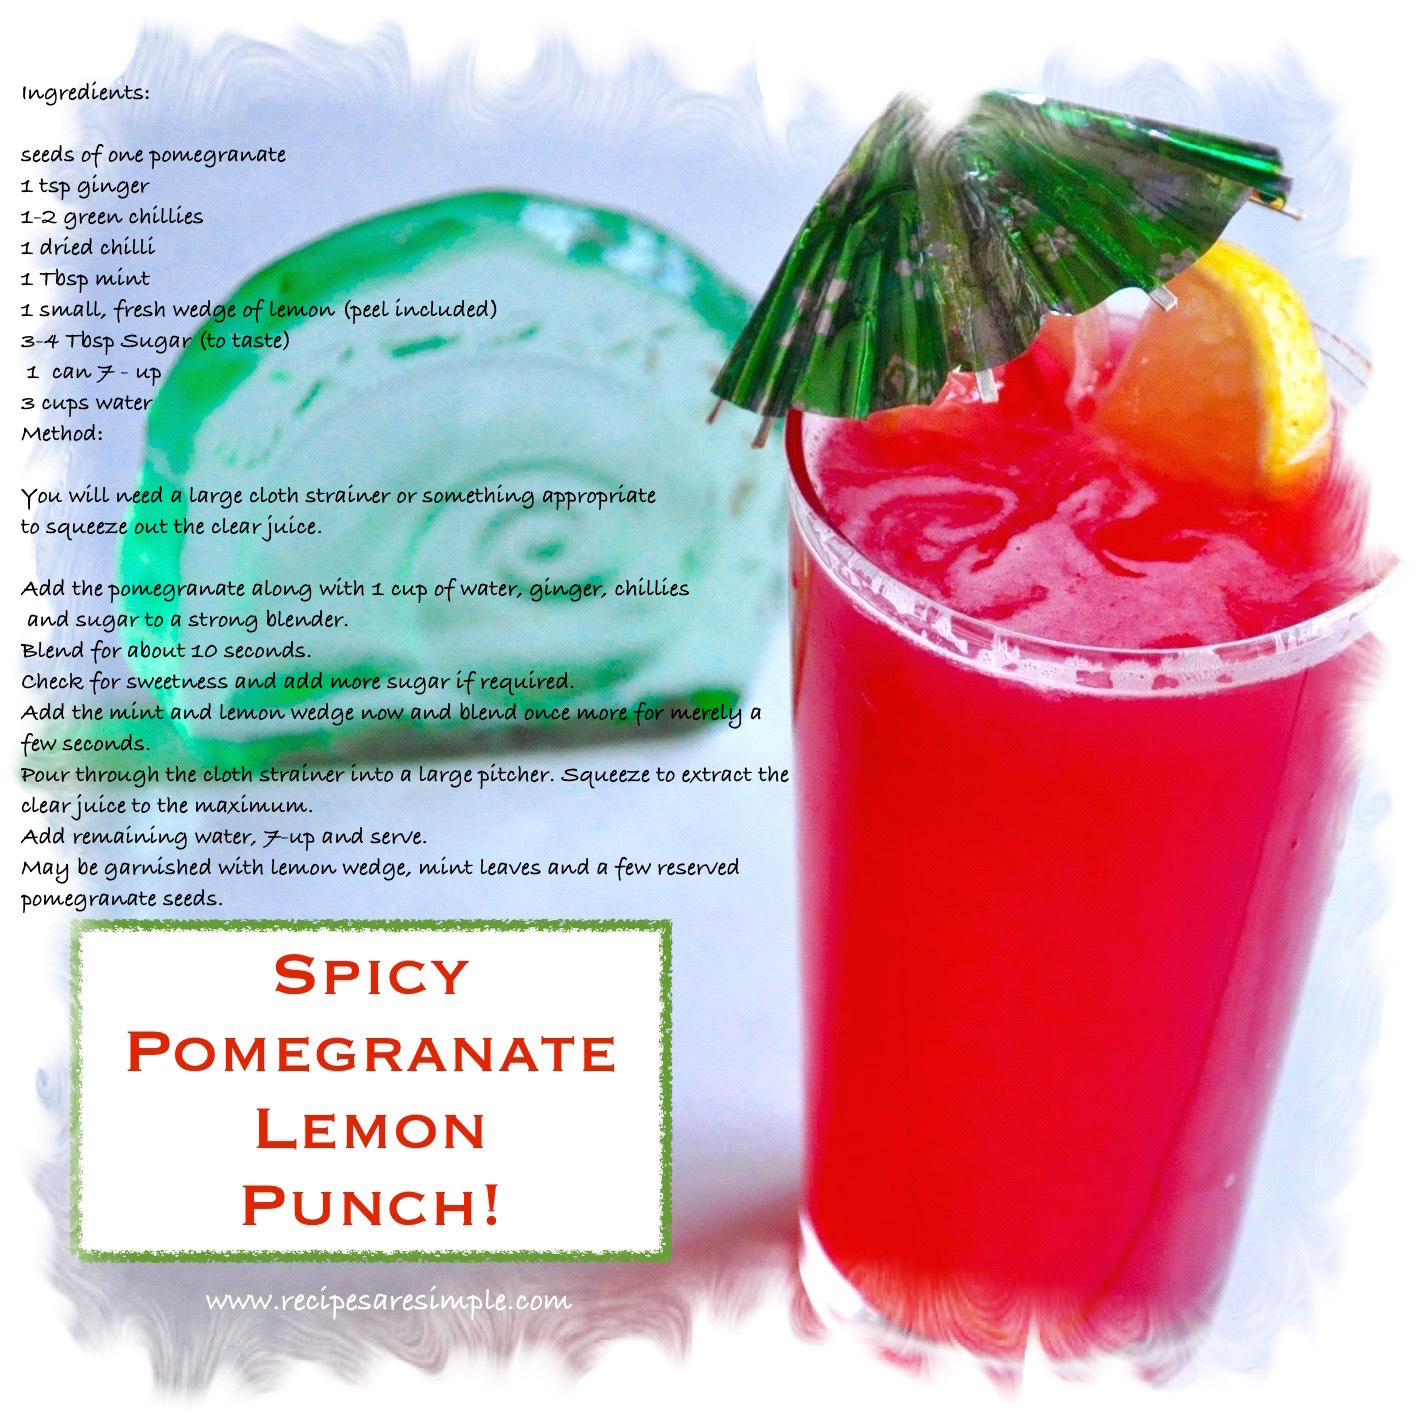 spicy pomegranate lemon punch recipe card Spicy Pomegranate Lemon Punch